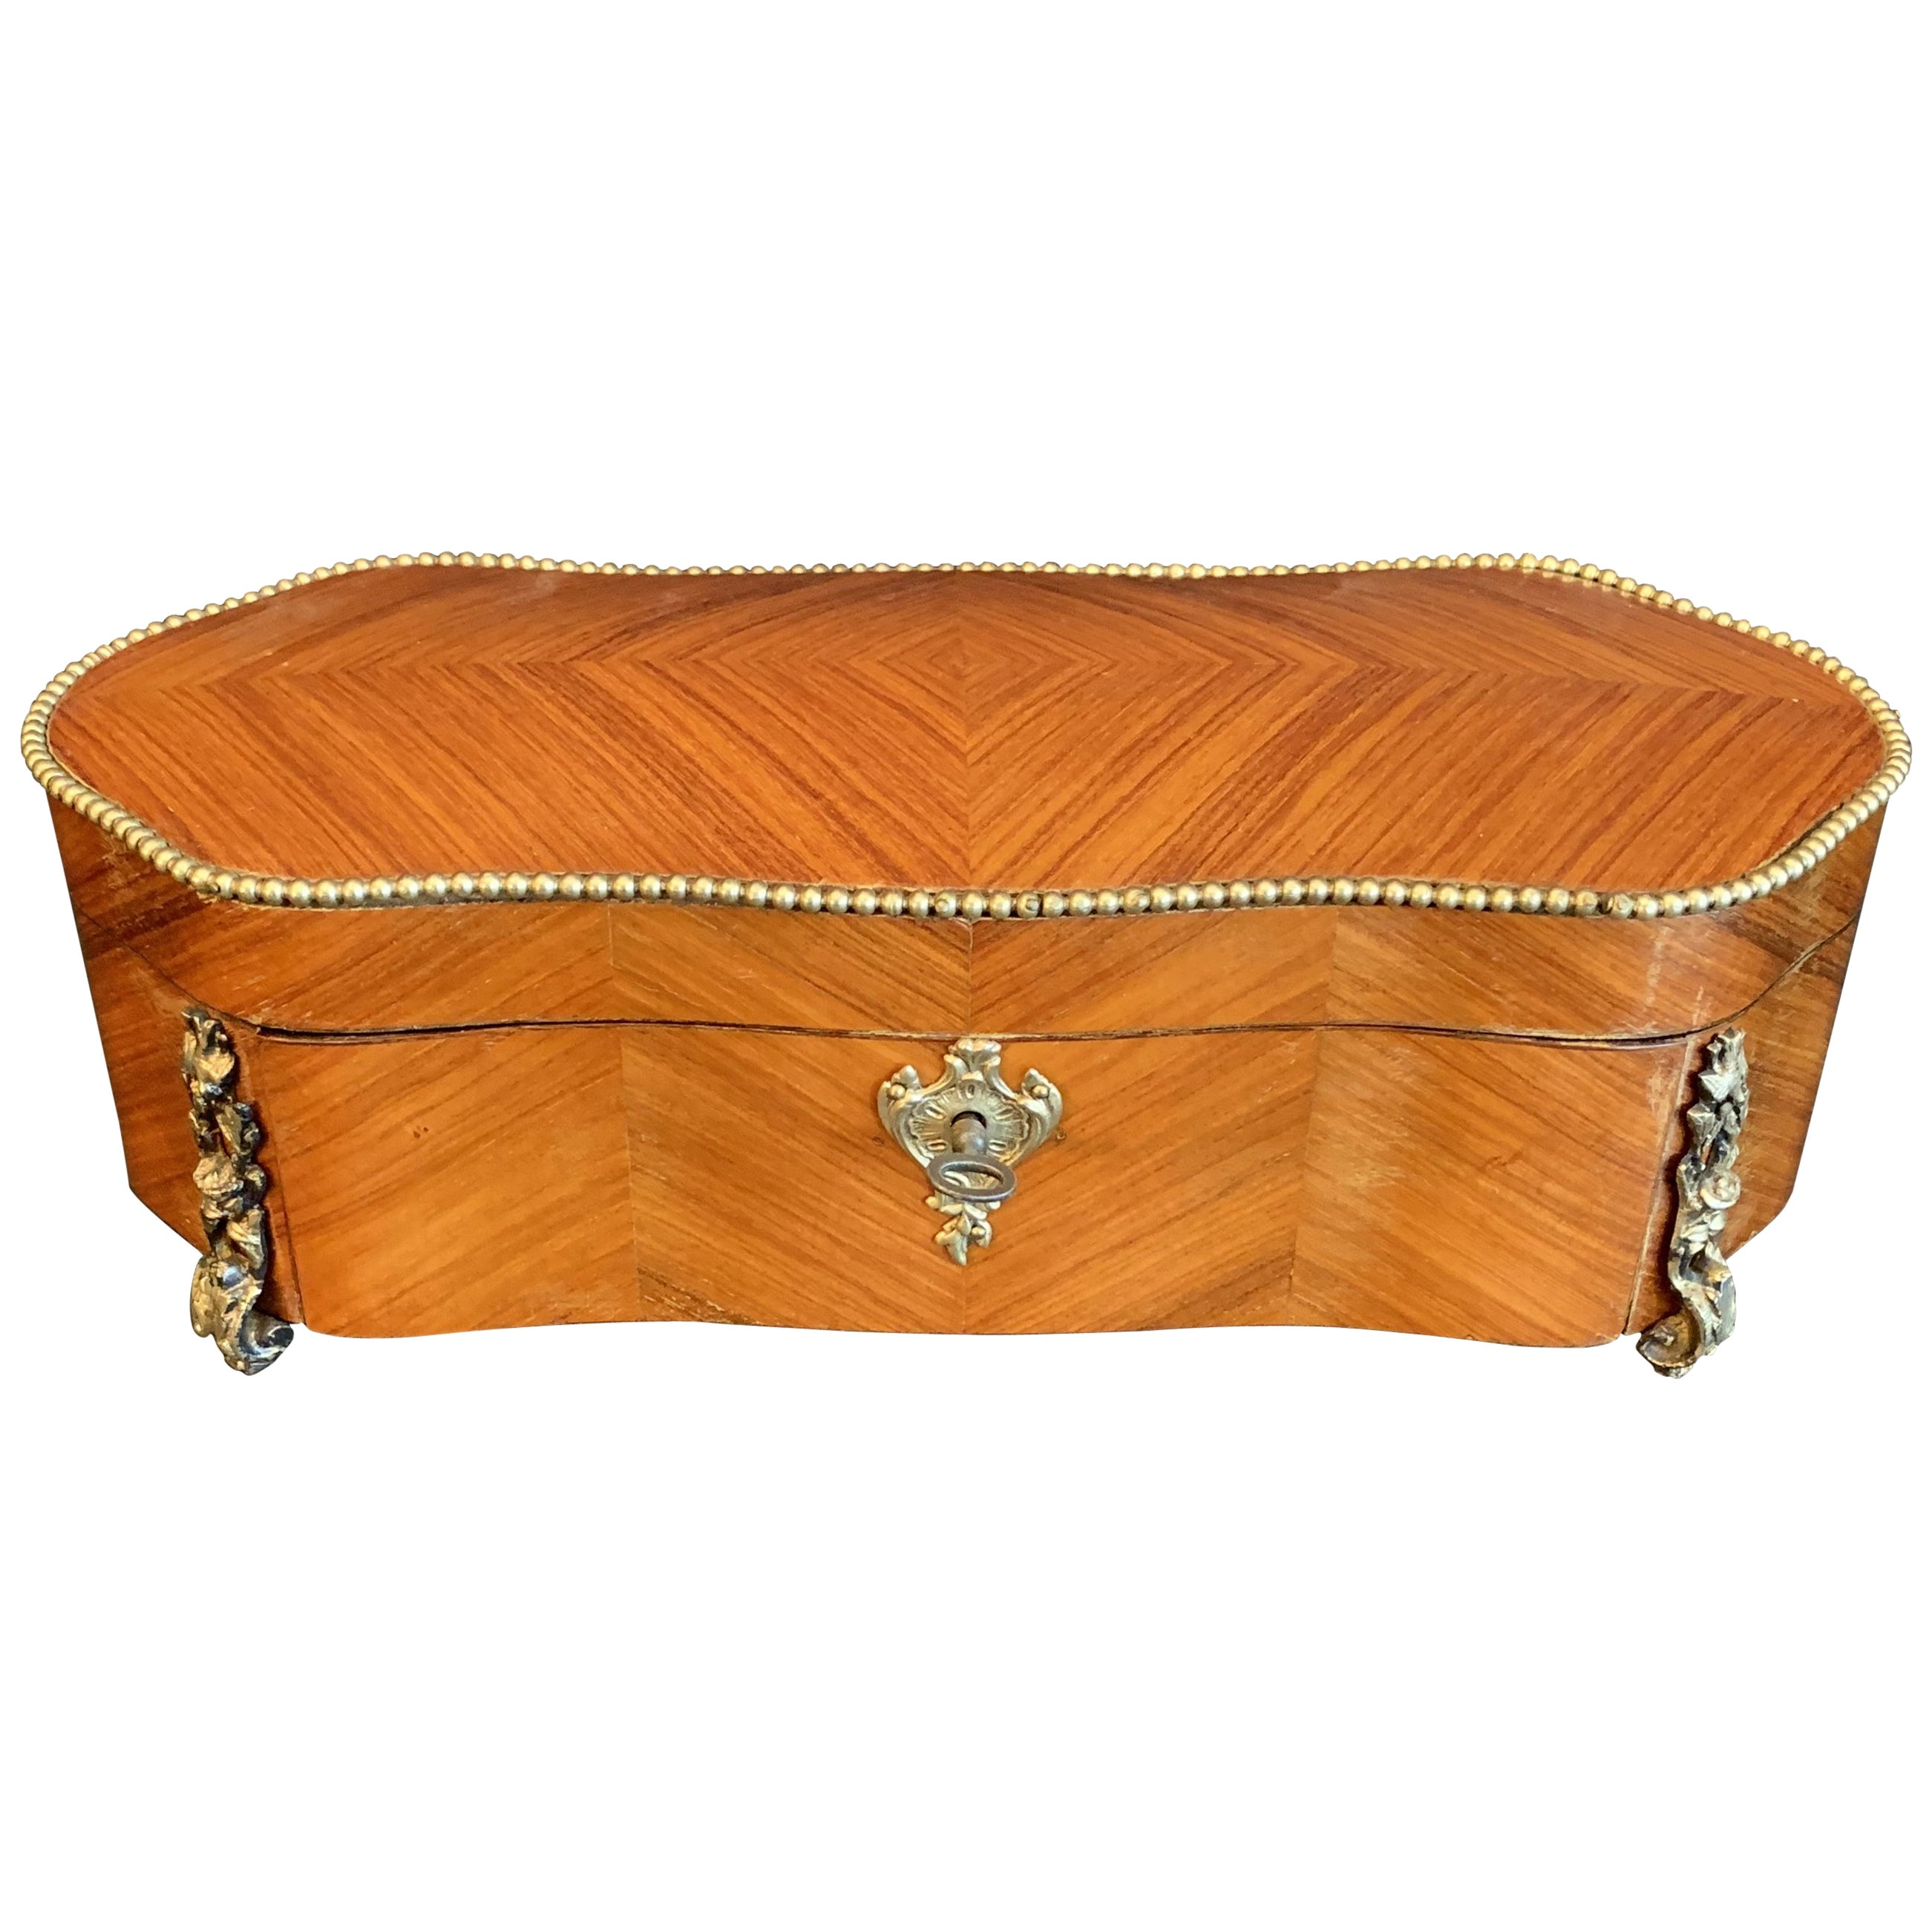 Wonderful French Ormolu Bronze Book Matched Fruitwood Marquetry Casket Box Key